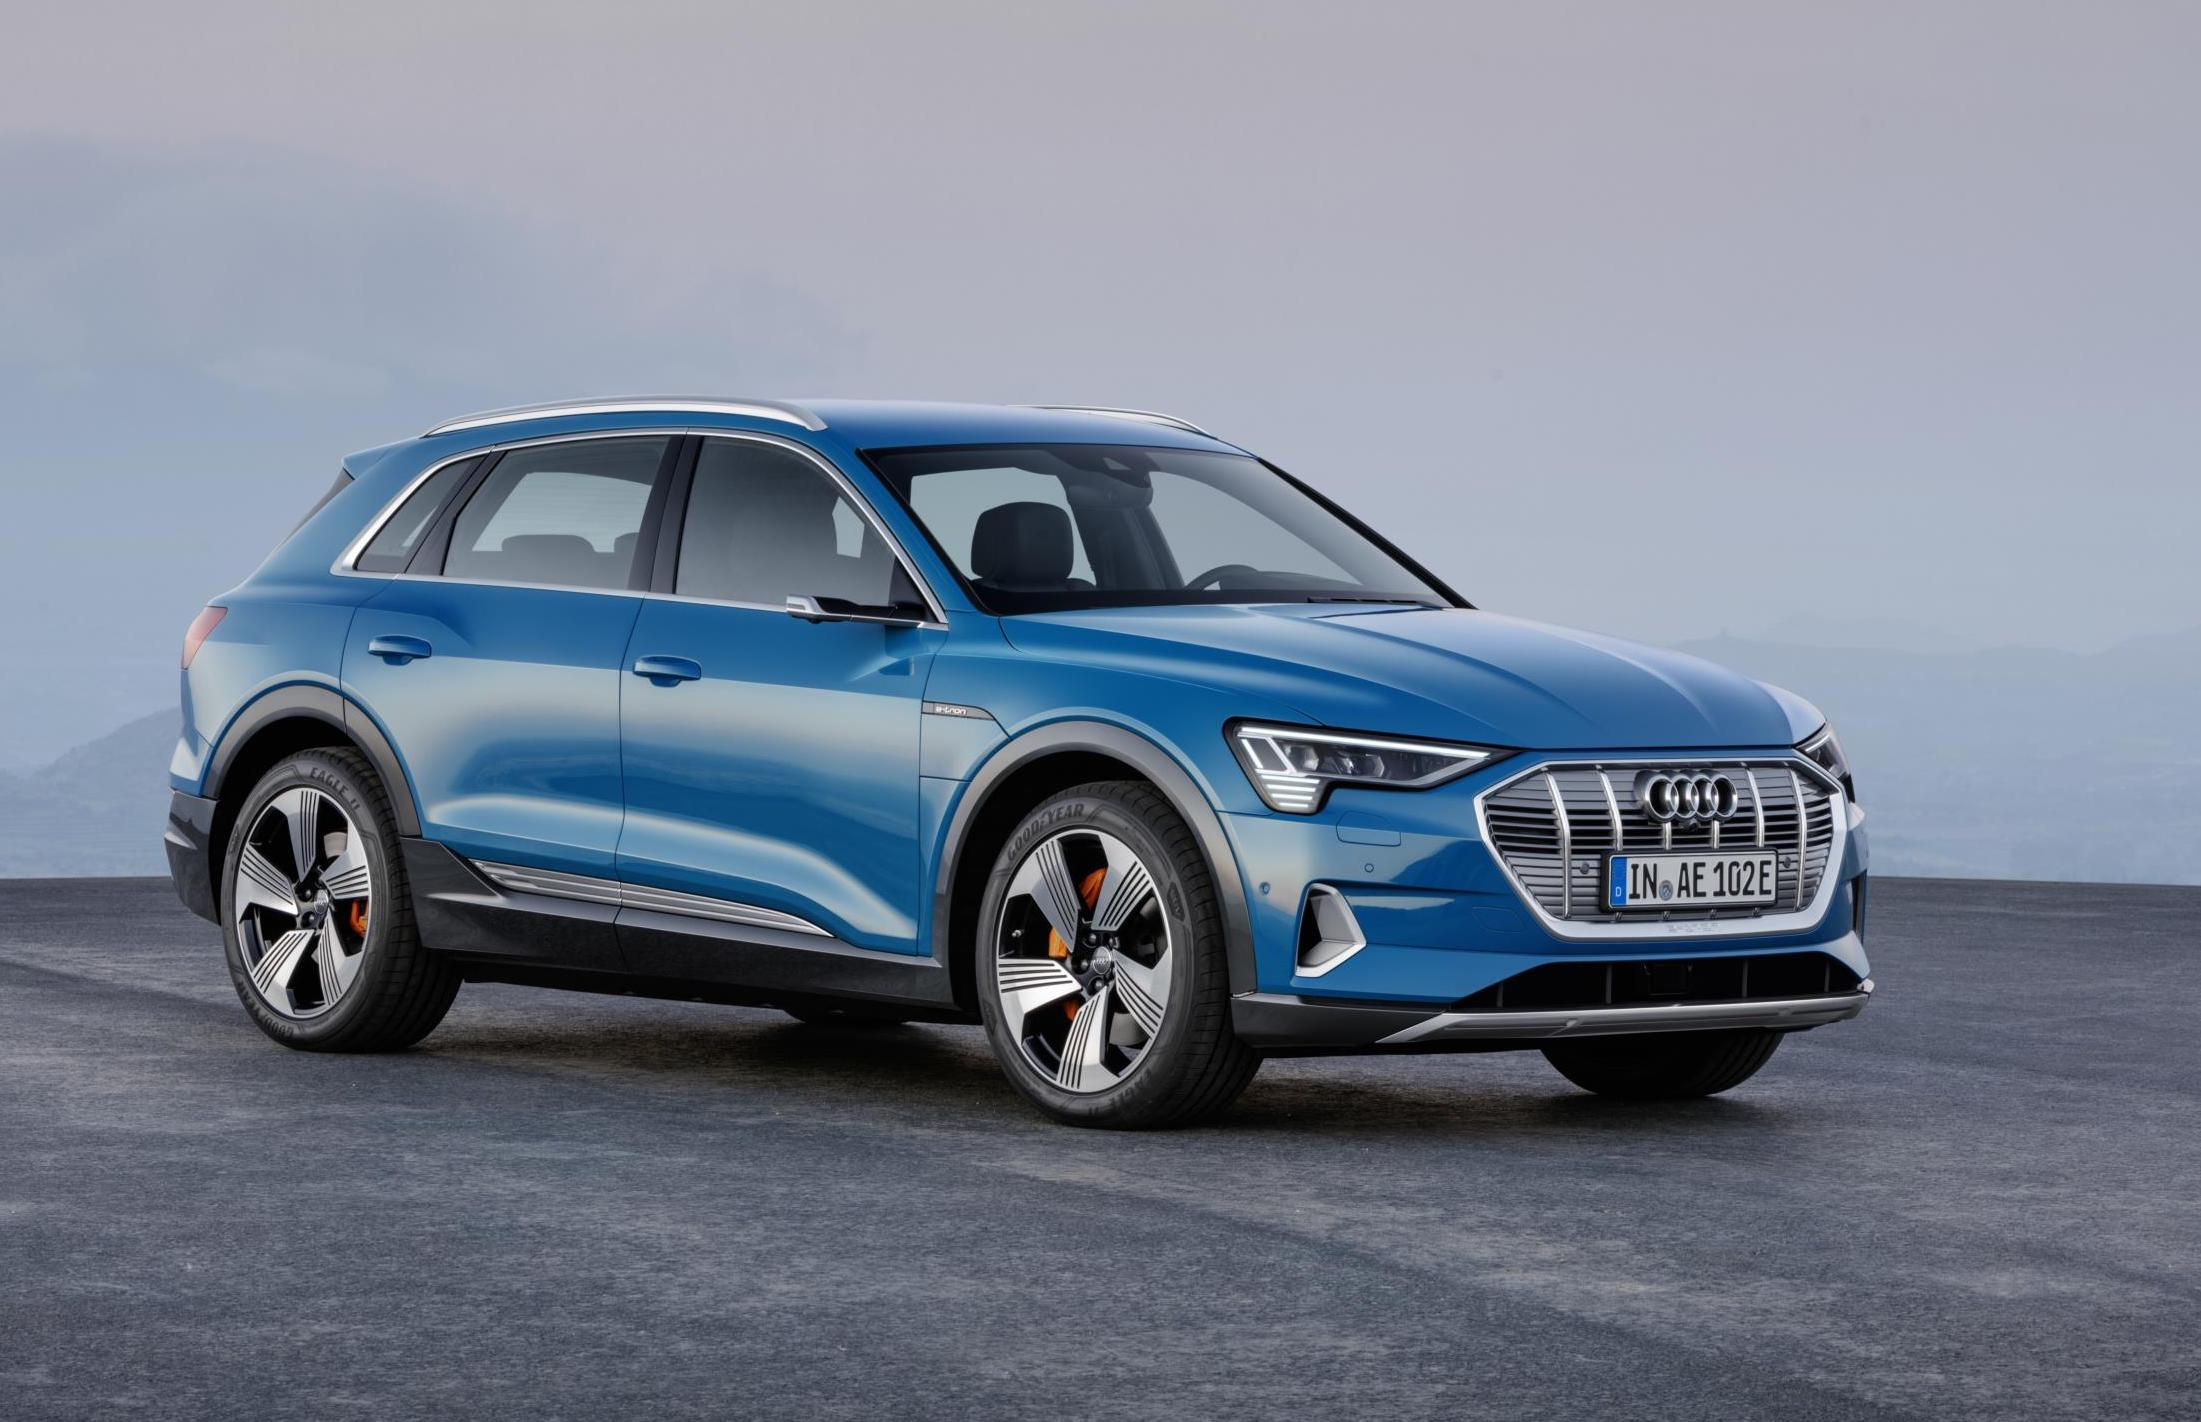 Audi announces e-tron SUV, its first production ready fully-electric vehicle